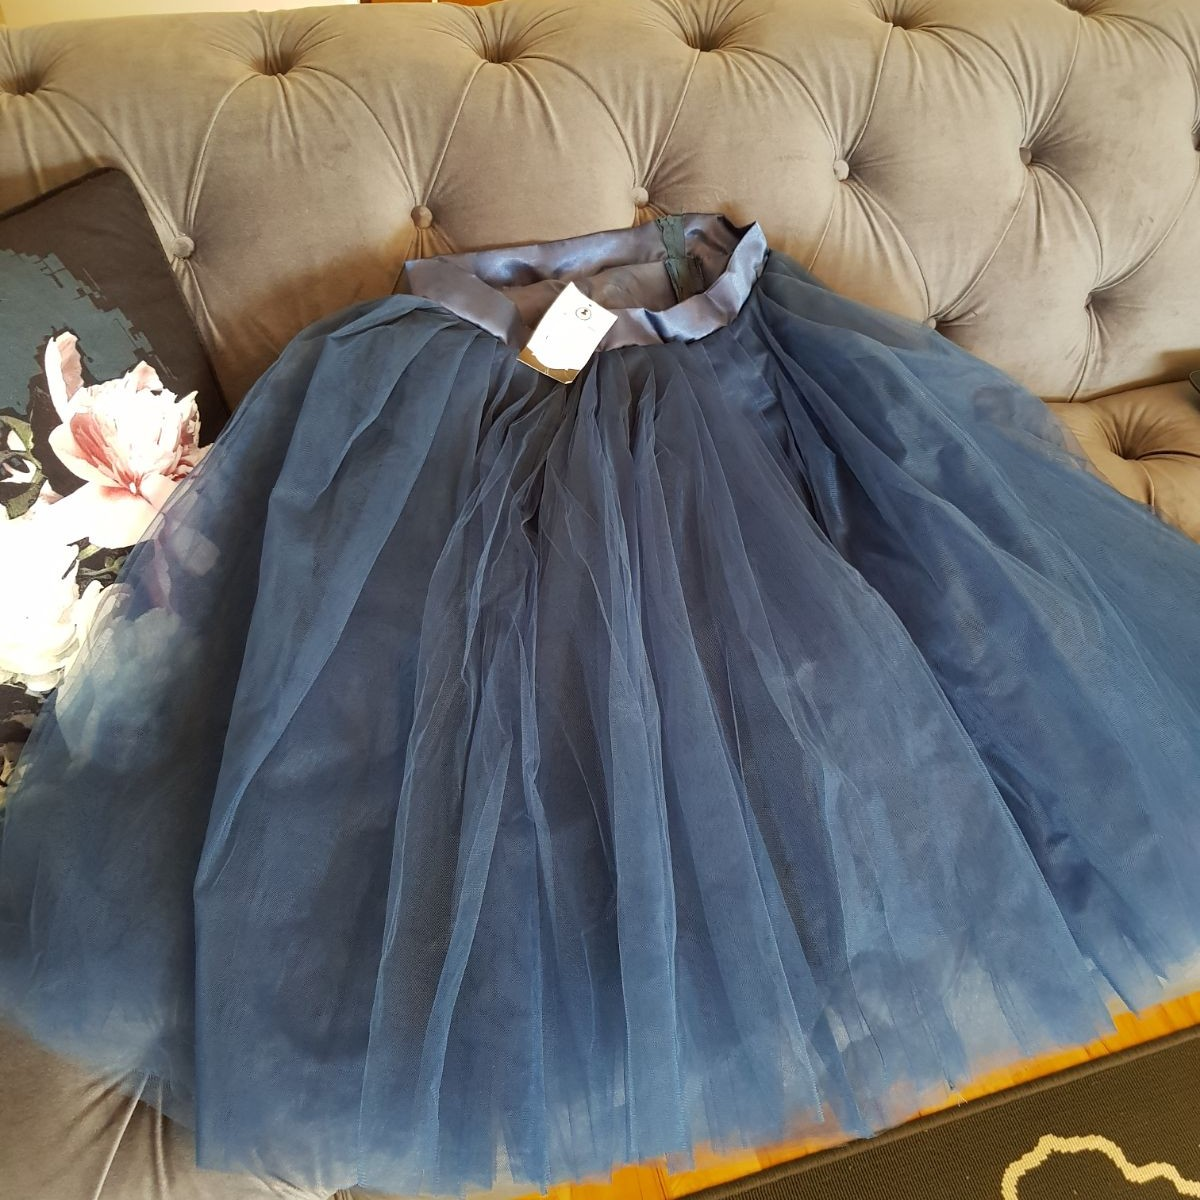 faad1a84cc Brand new navy puff ball skirt never worn . Tags say large a - Depop